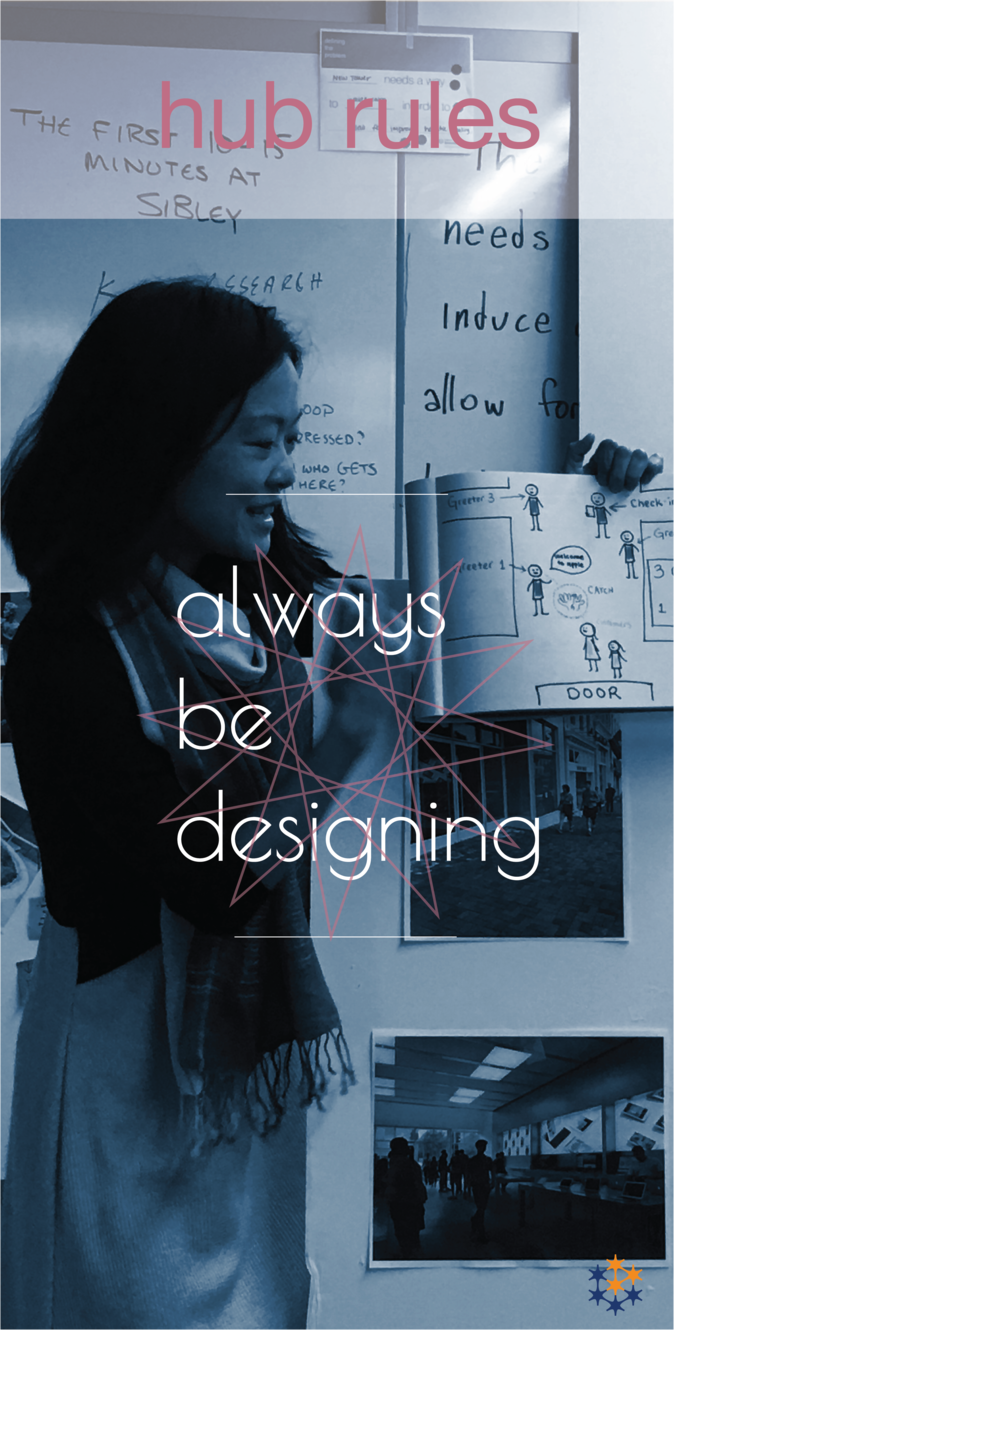 Rule 2 A.B.D! - always be designing!